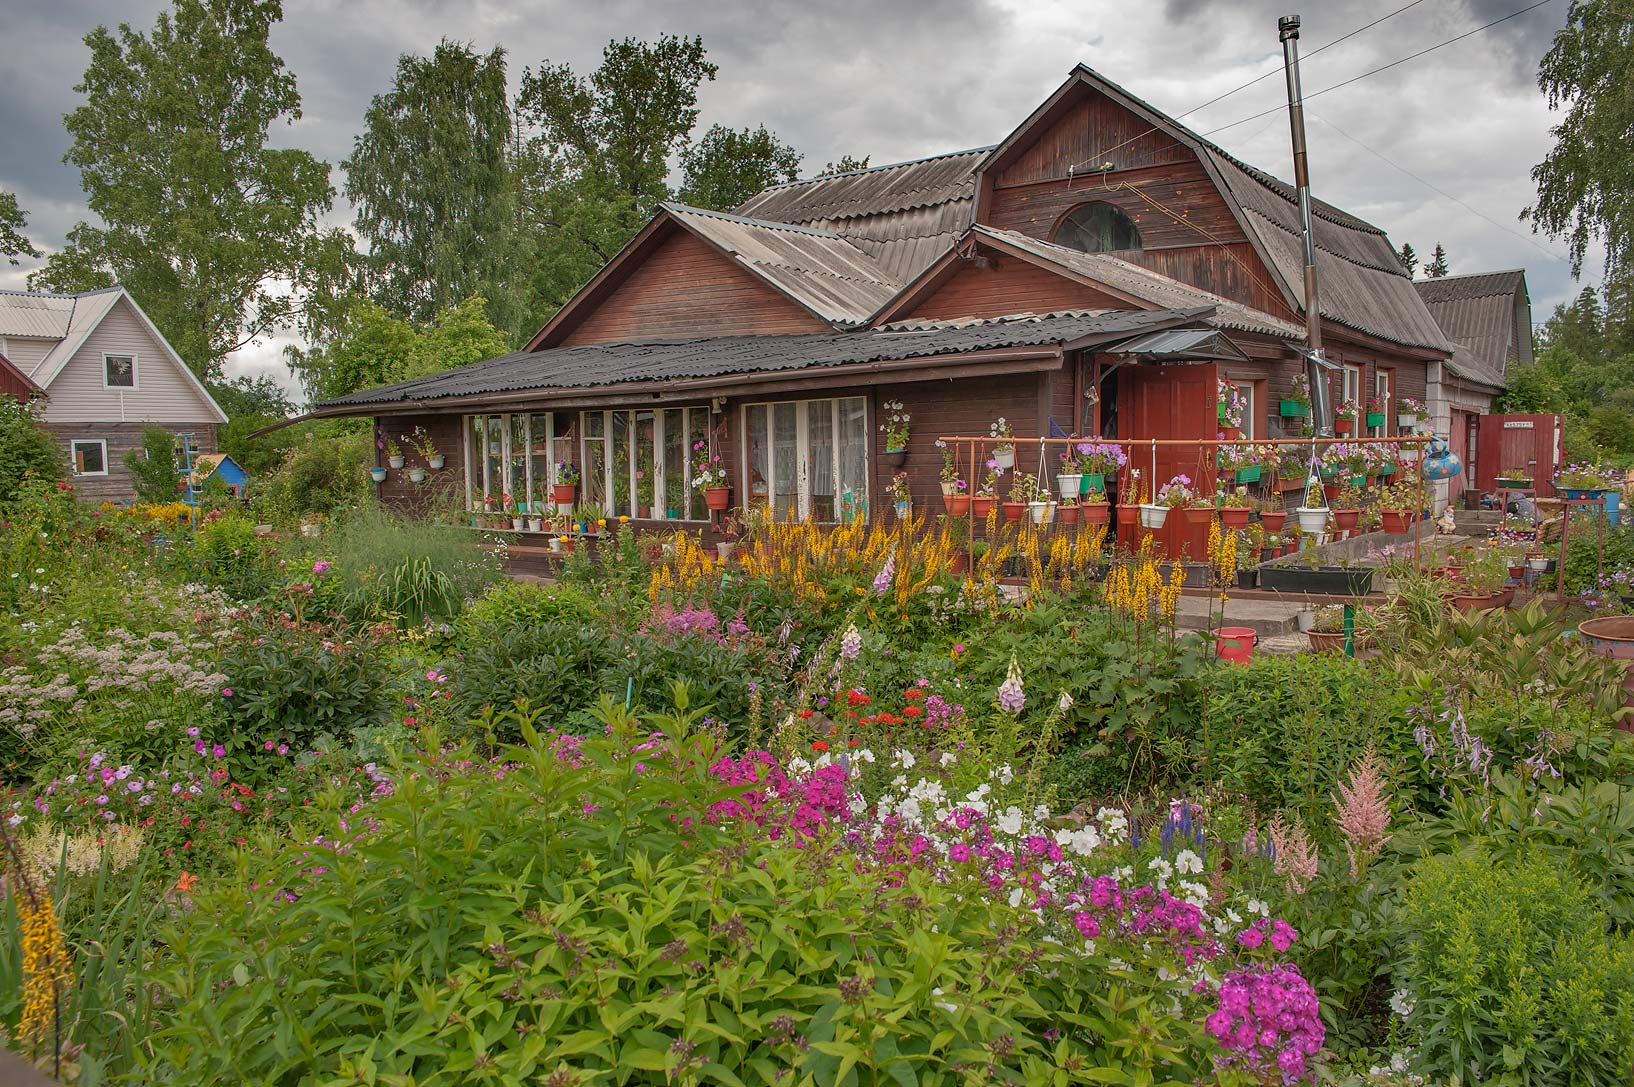 Summer house with flowers on Krasnaya St.. Siverskaya south from St.Petersburg, Russia